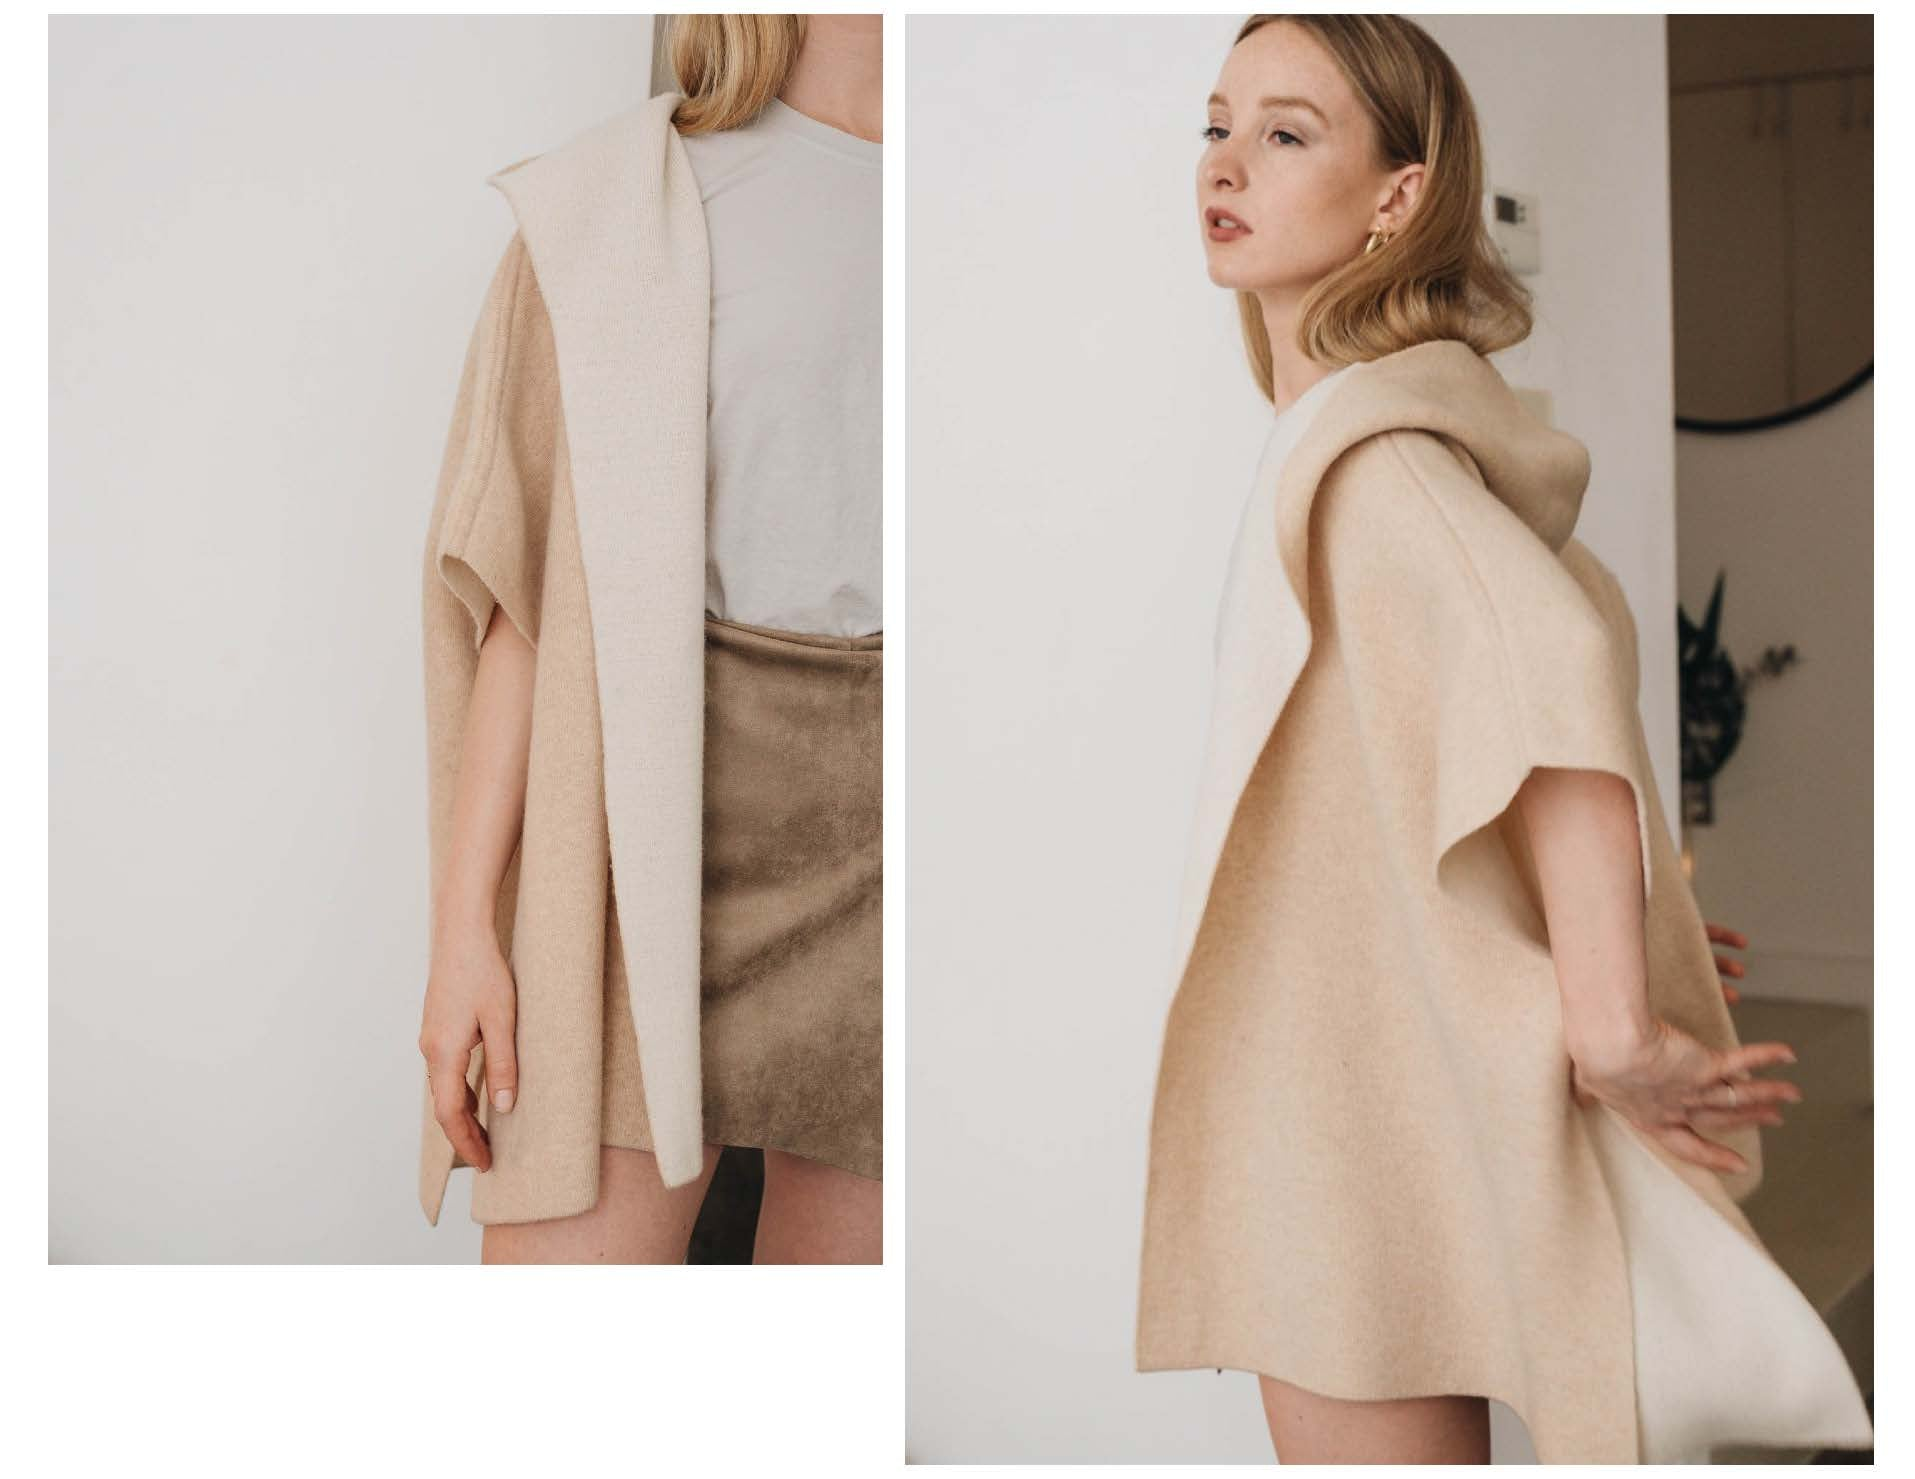 ELMNTL NYC Sustainable Fashion Poncho Cape